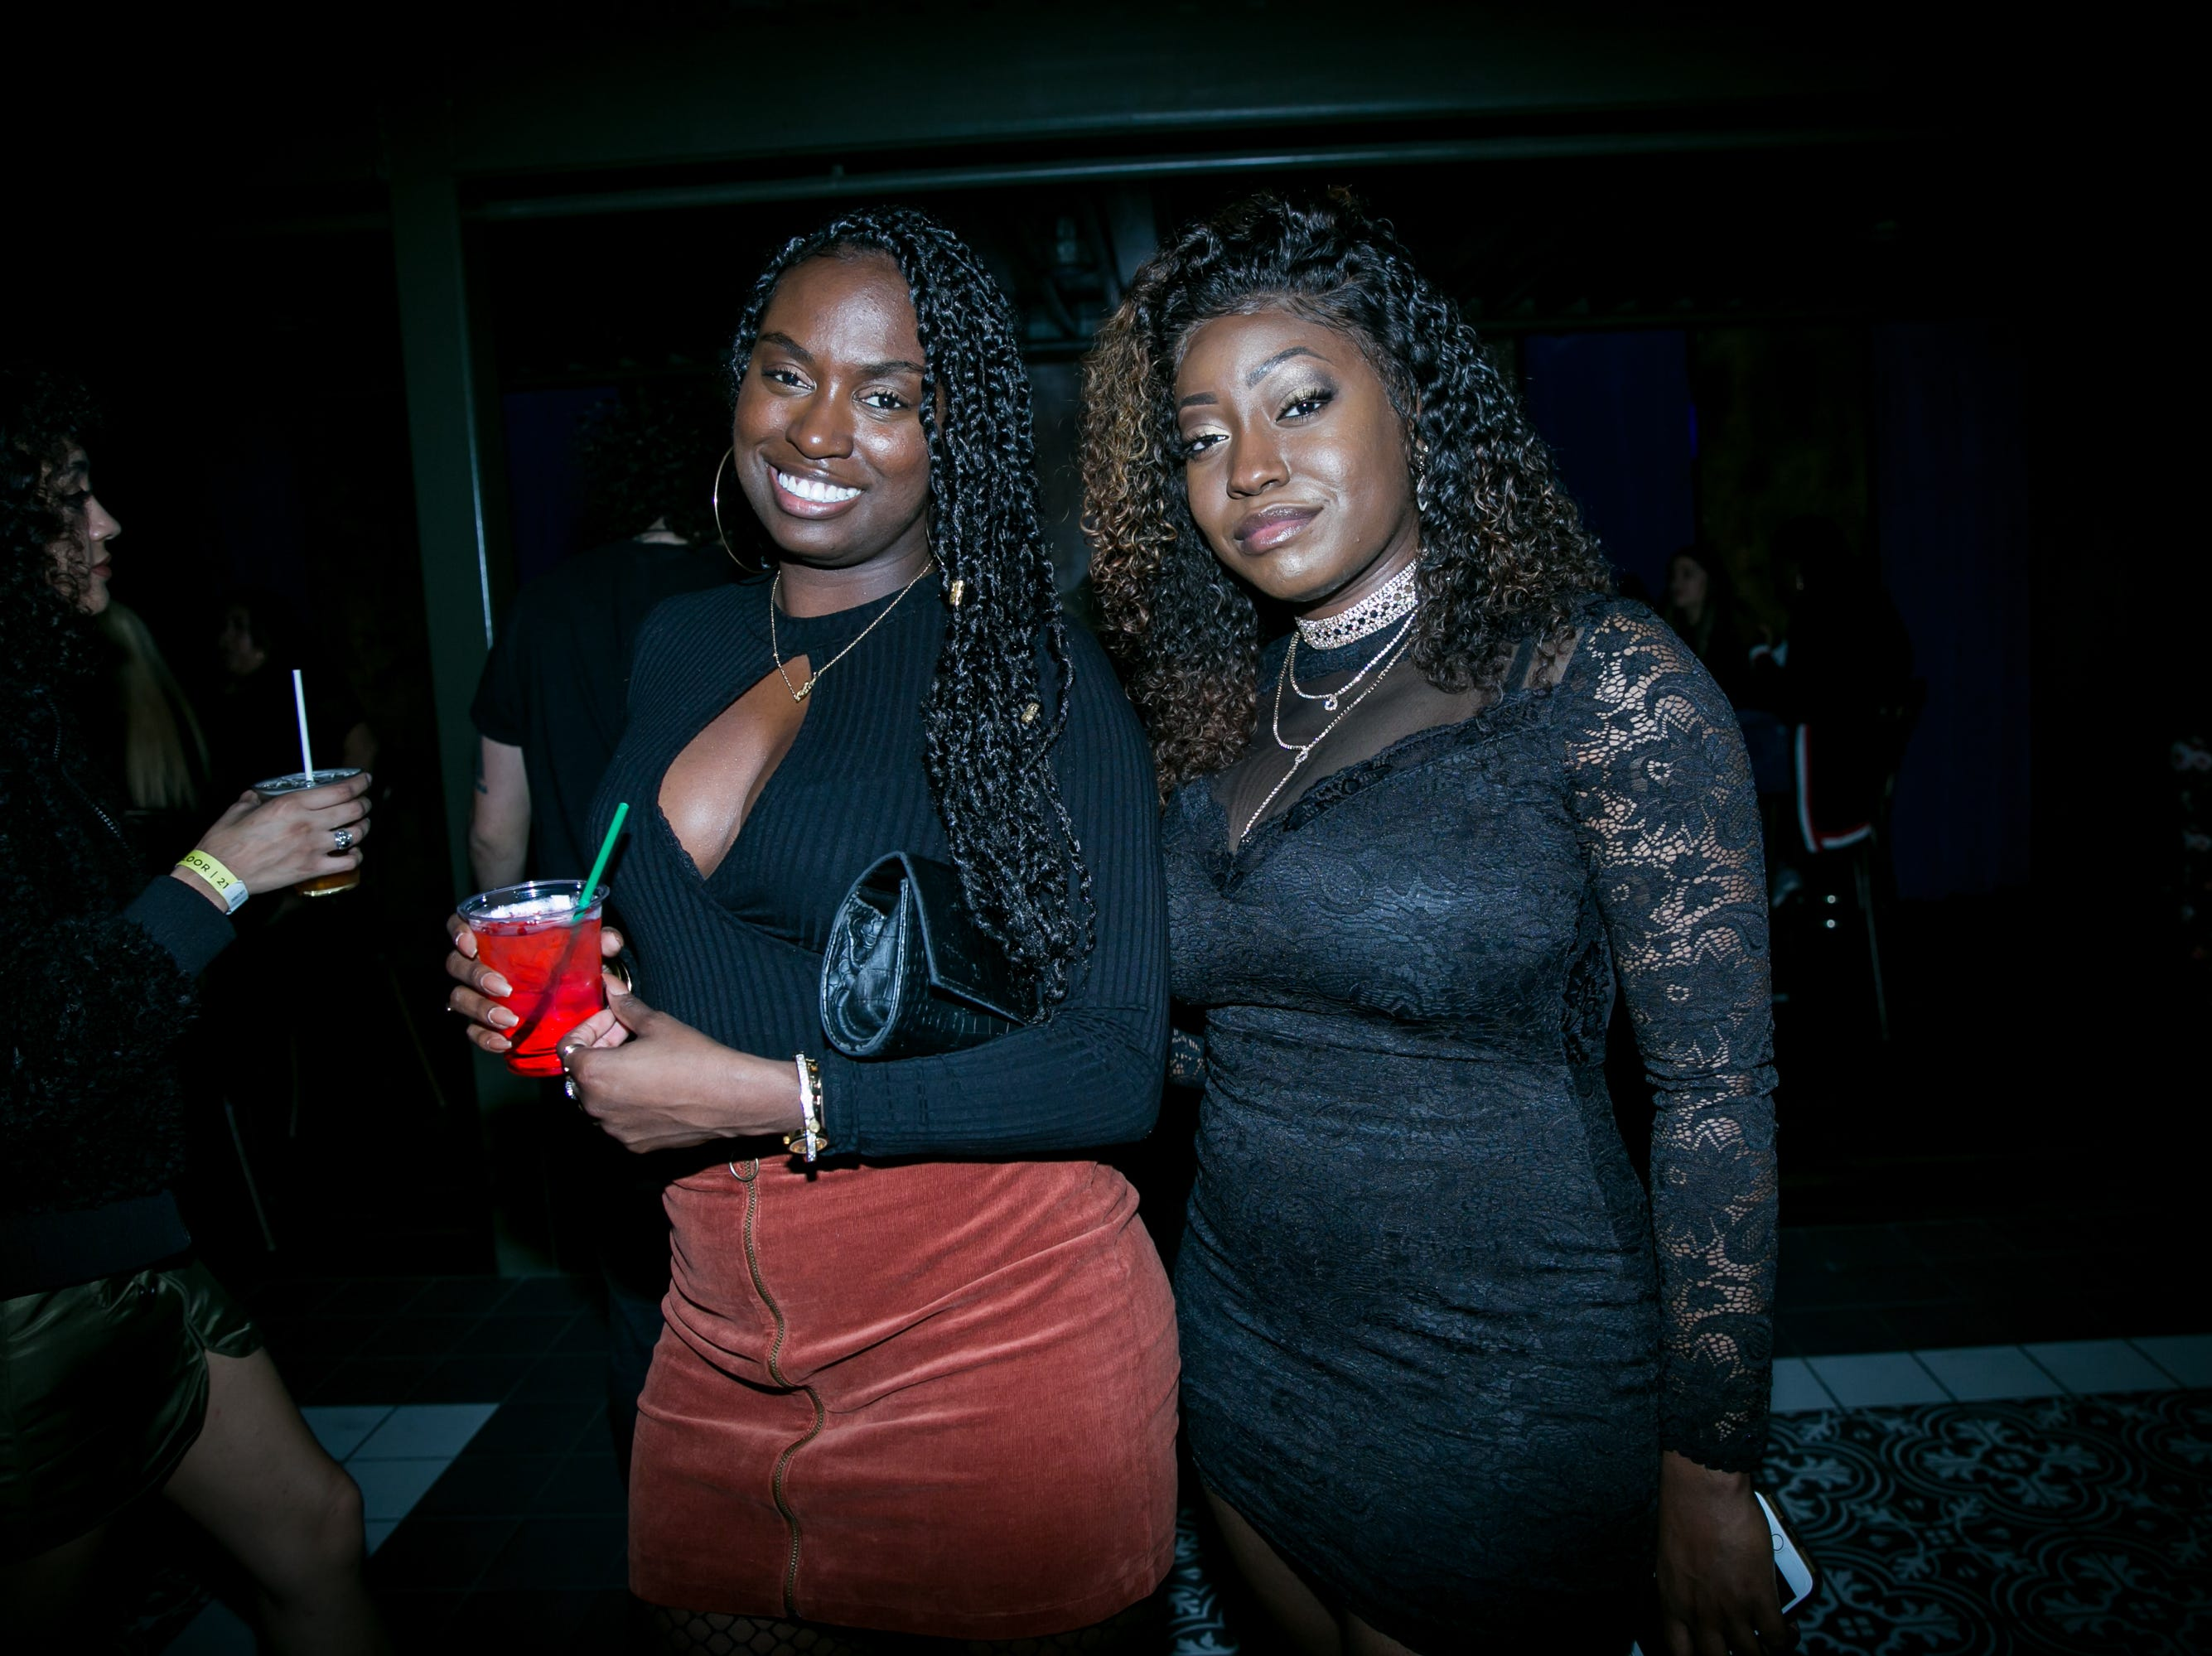 They were glammed up during Drake Night: Fake Real Love at the Van Buren on Feb. 9, 2019.